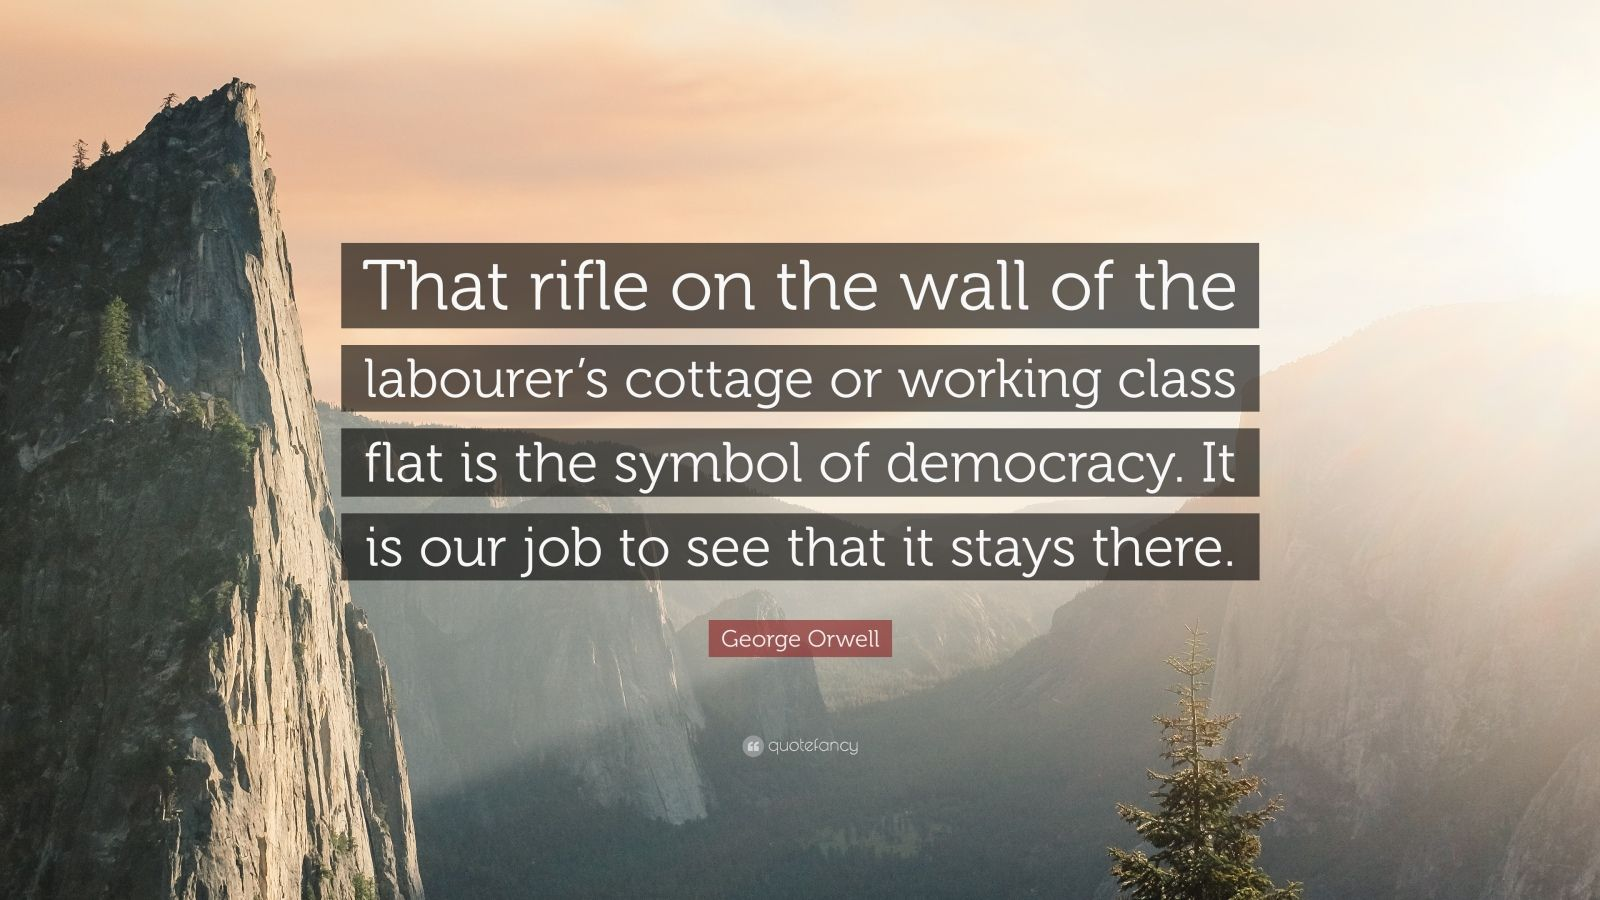 """George Orwell Quote: """"That rifle on the wall of the labourer's cottage or working class flat is the symbol of democracy. It is our job to see that it stays there."""""""